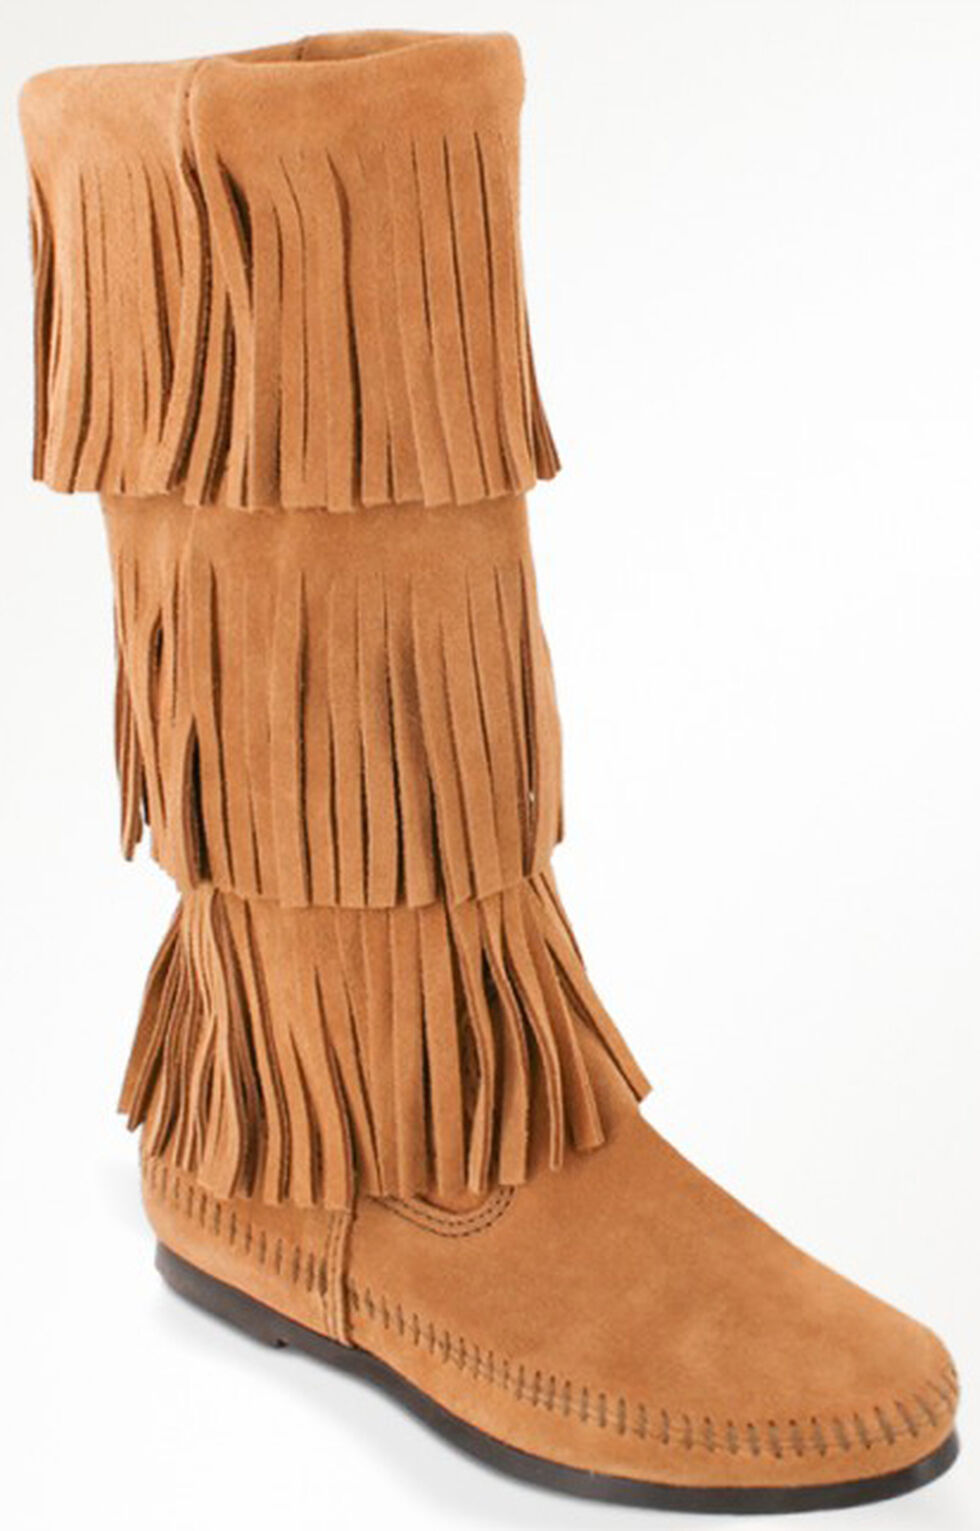 Minnetonka Women's Calf Hi 3-Layer Fringe Boots, Taupe, hi-res